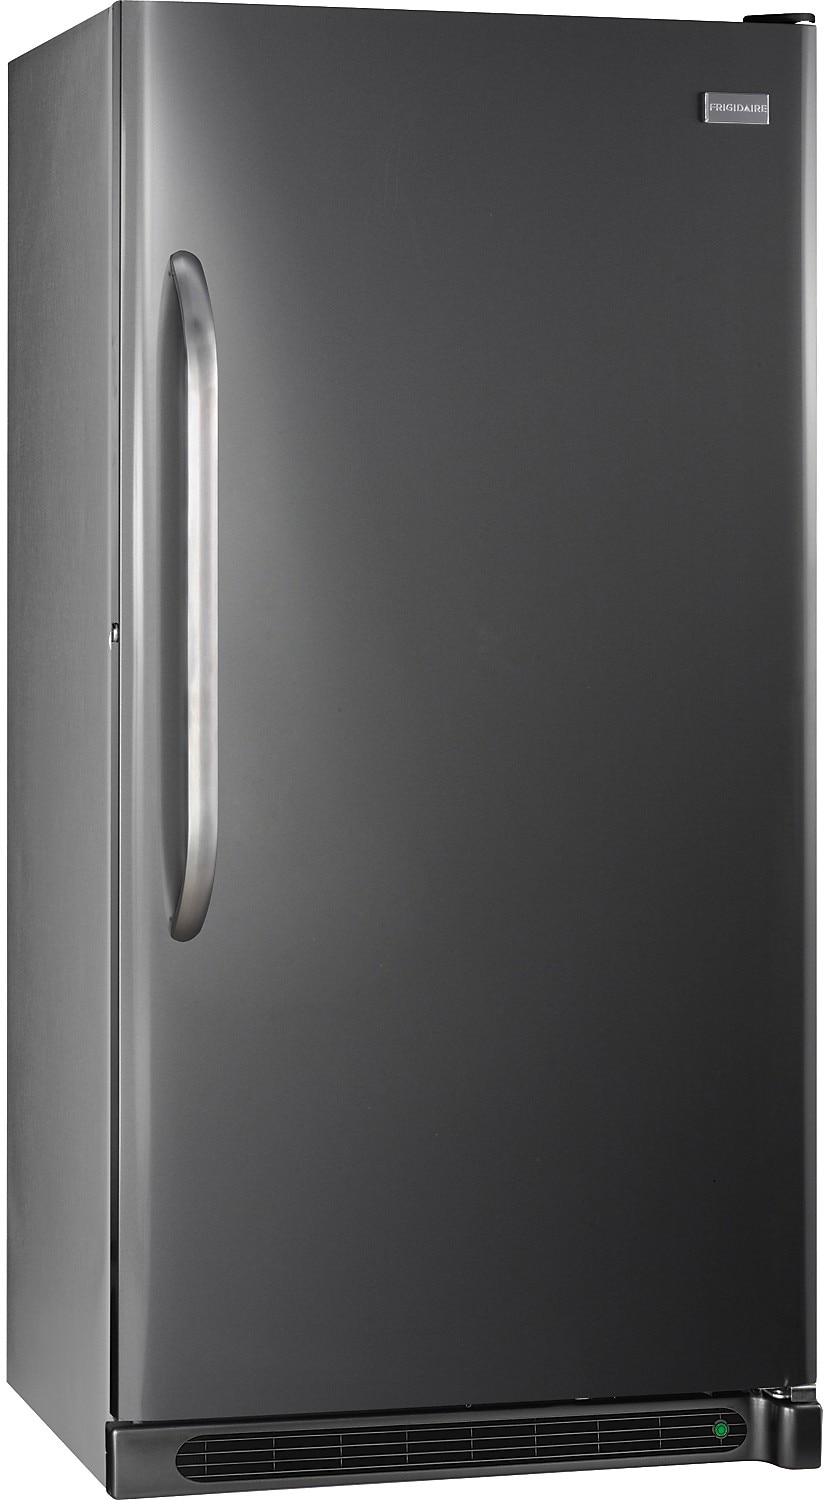 Frigidaire 16.6 Cu. Ft. Frost-Free Upright Freezer - Slate